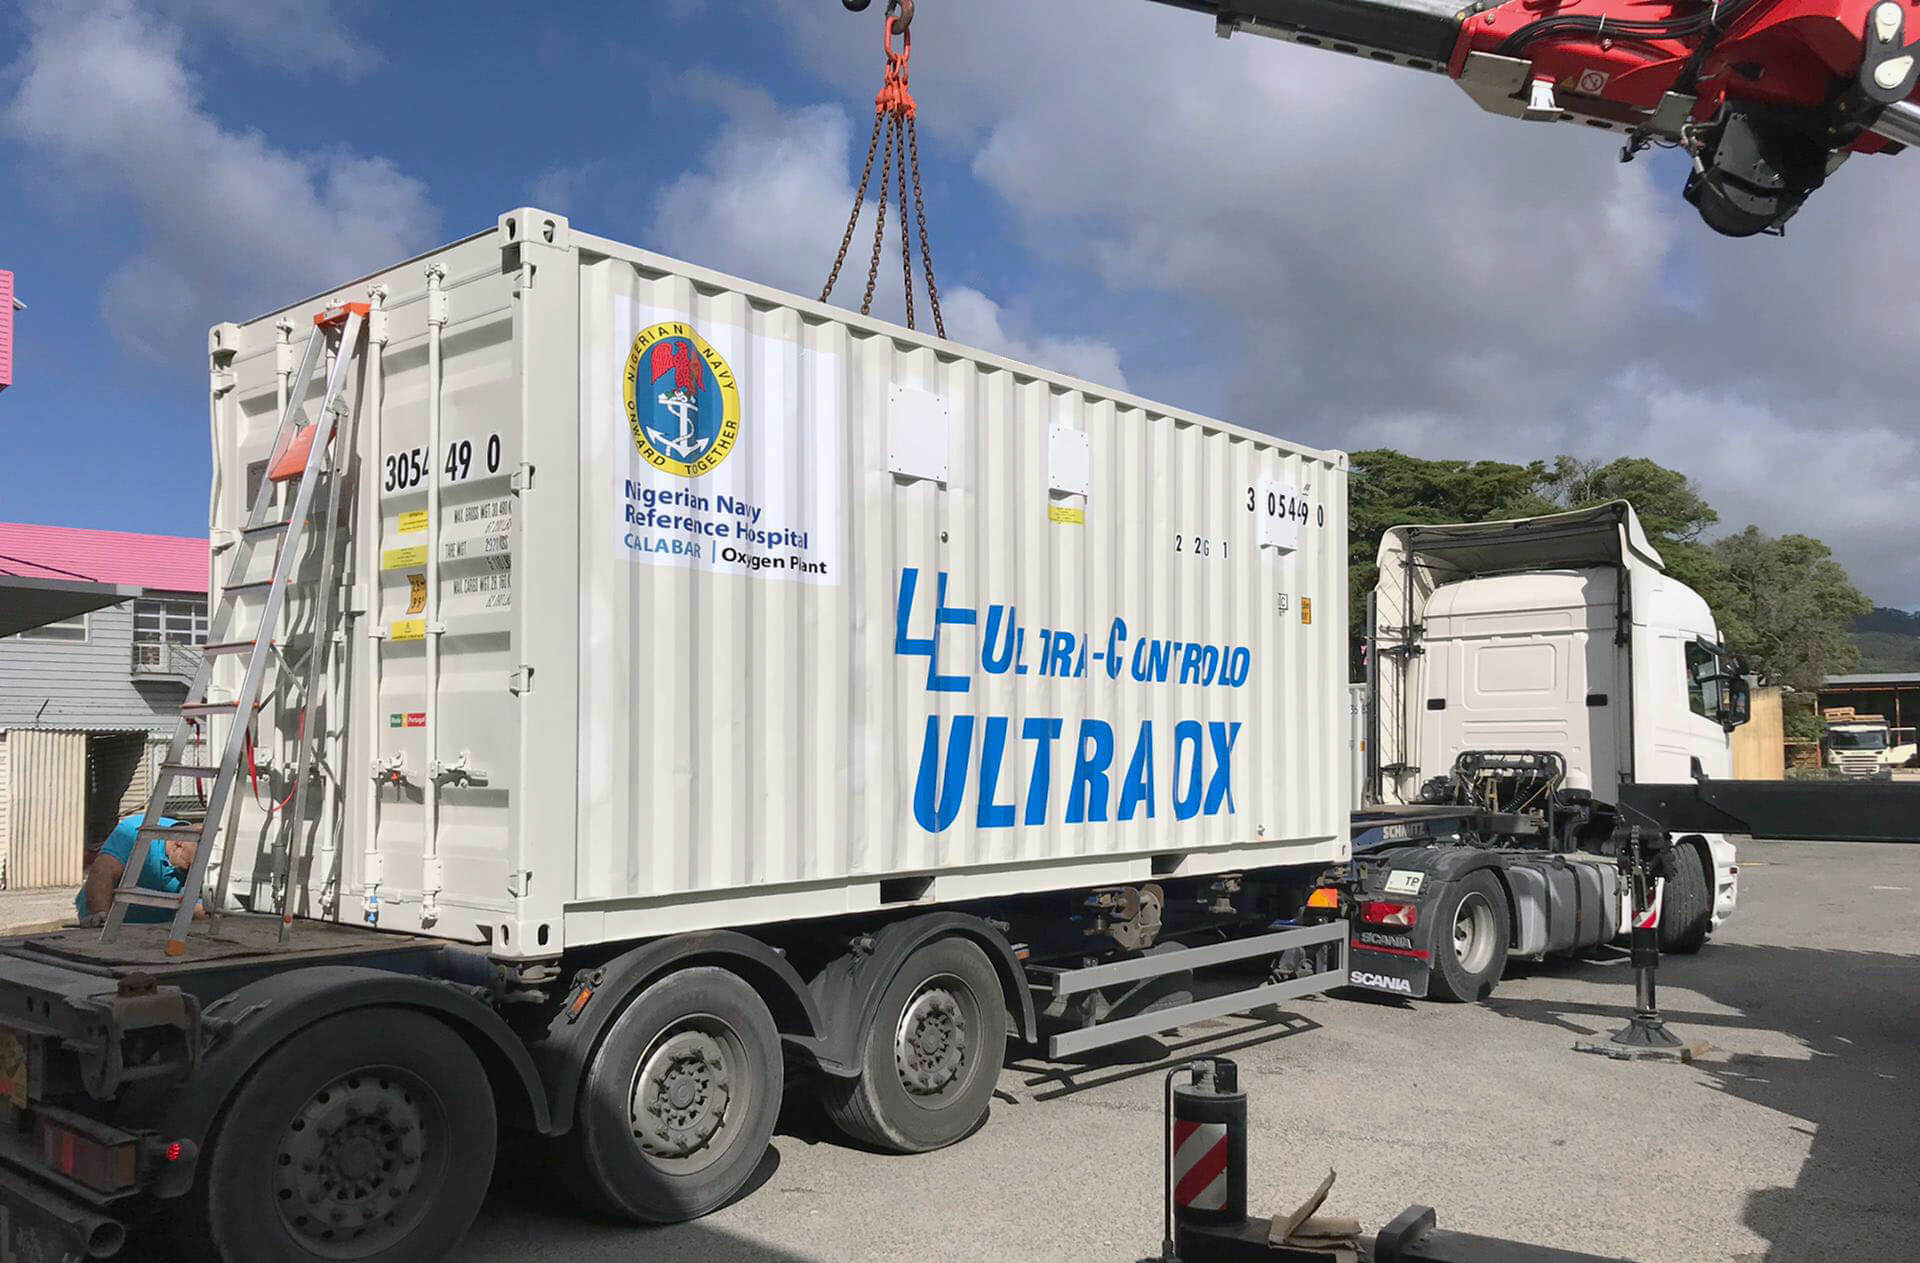 Shipment of a containerized ULTRAOX Oxygen Plant to the Nigerian Navy Reference Hospital